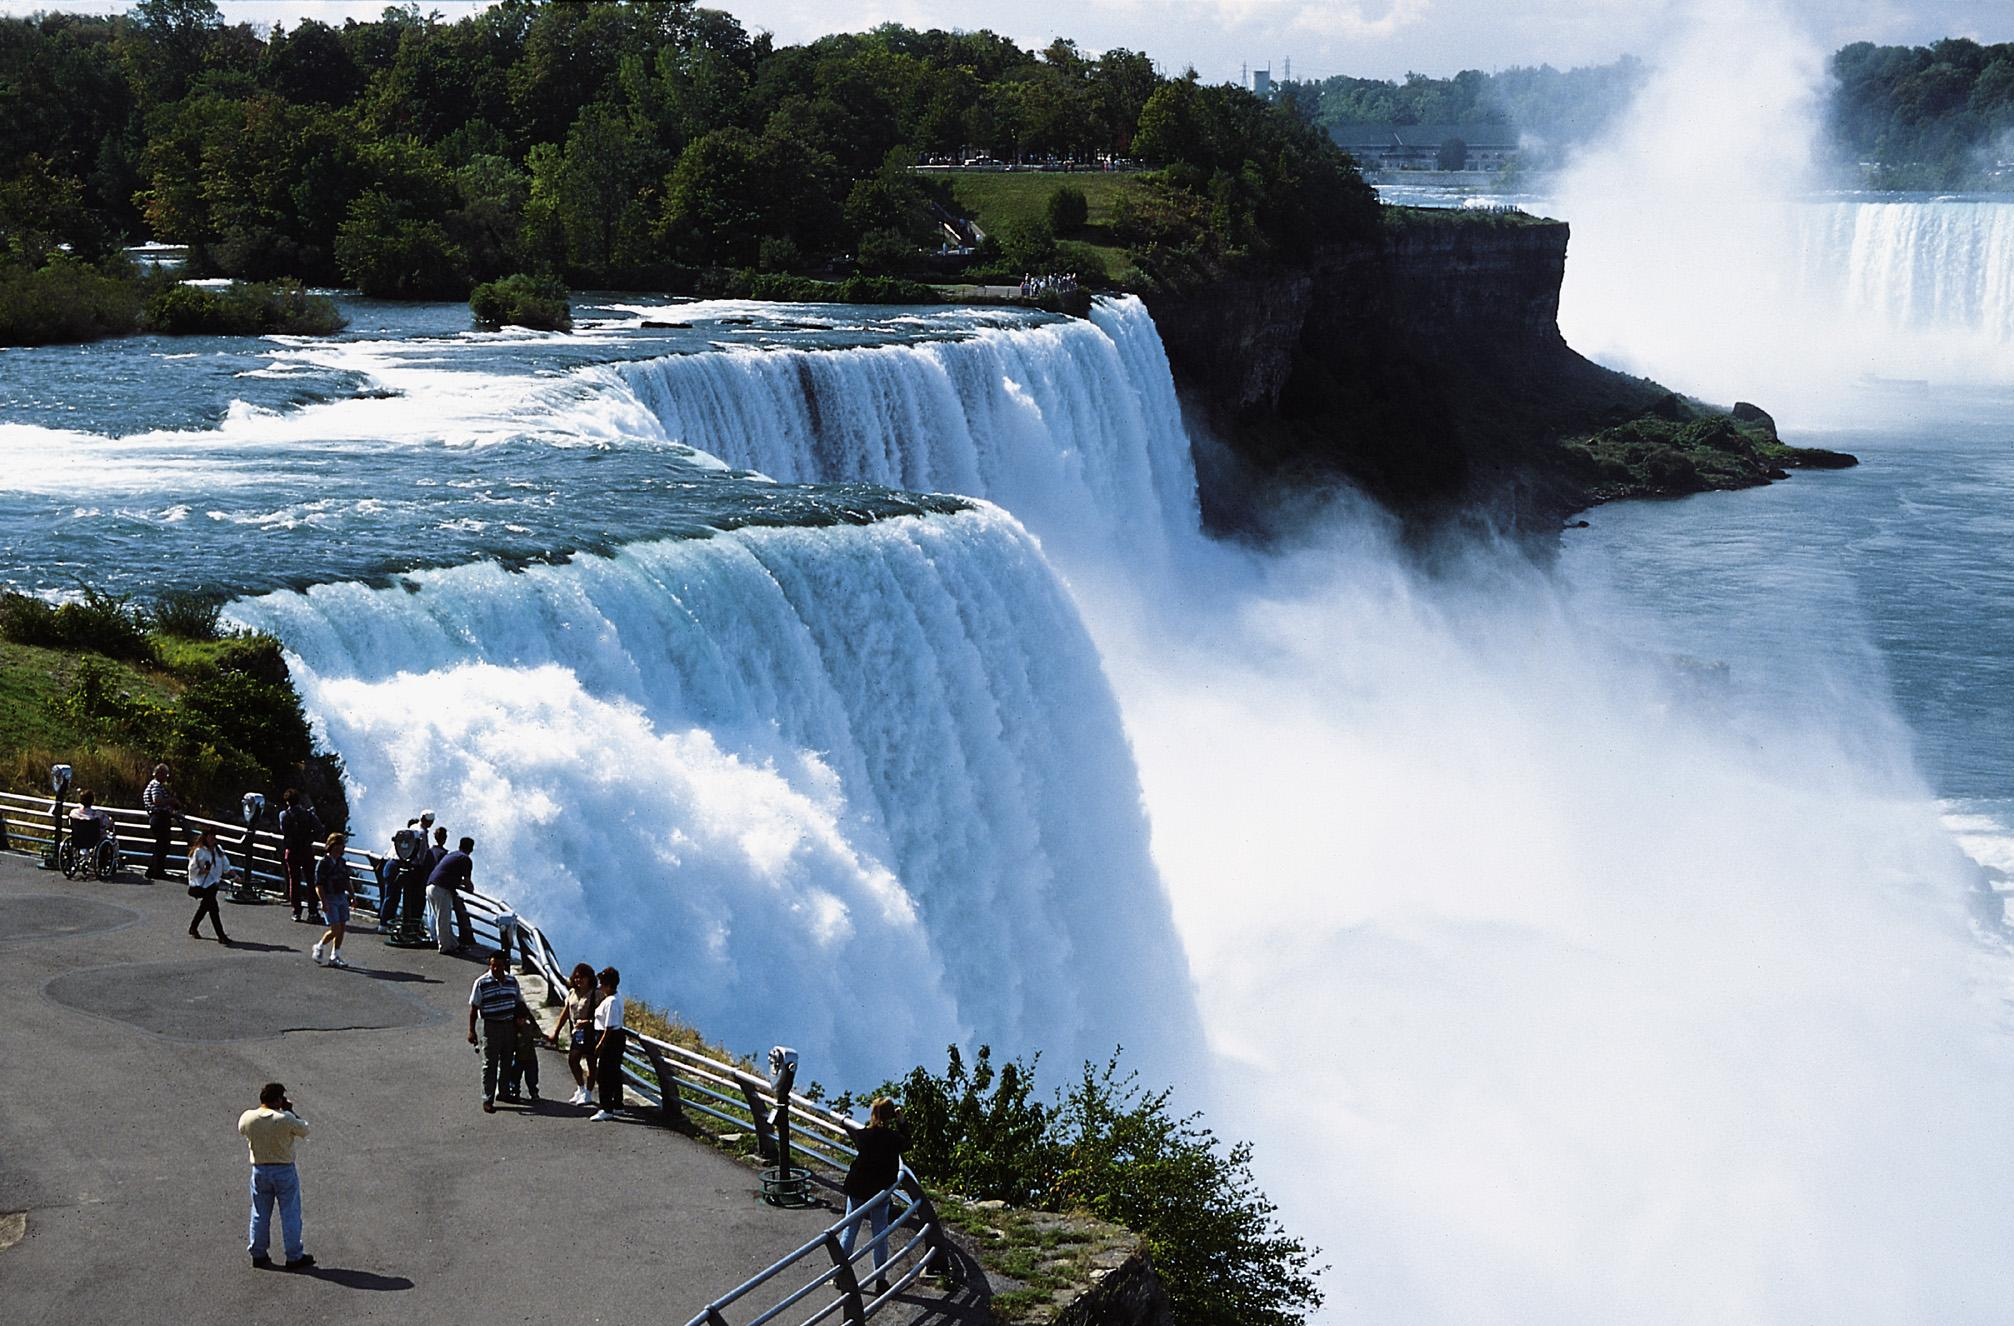 Top 10 Most Beautiful Tourist Attractions In The World